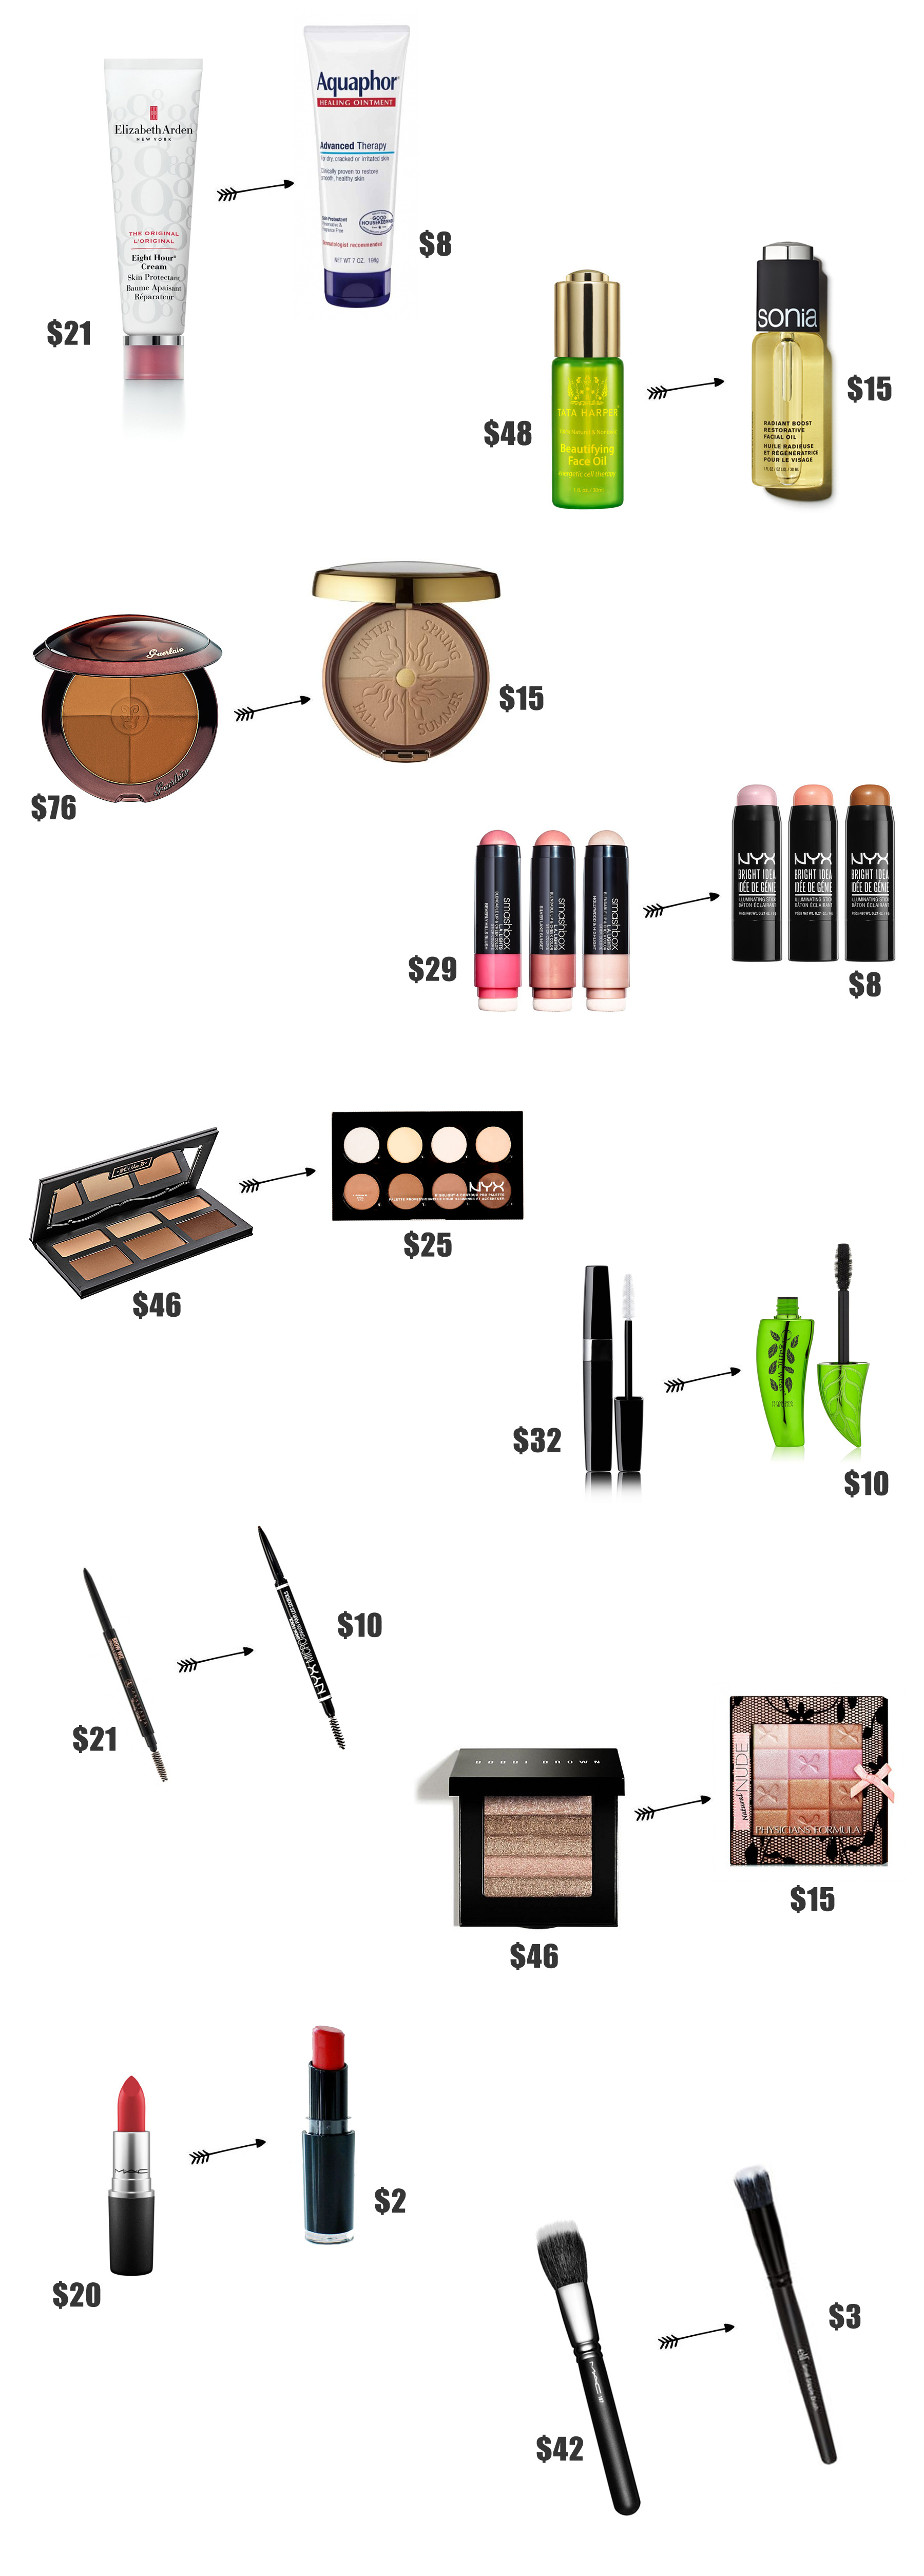 dupe-list-prices